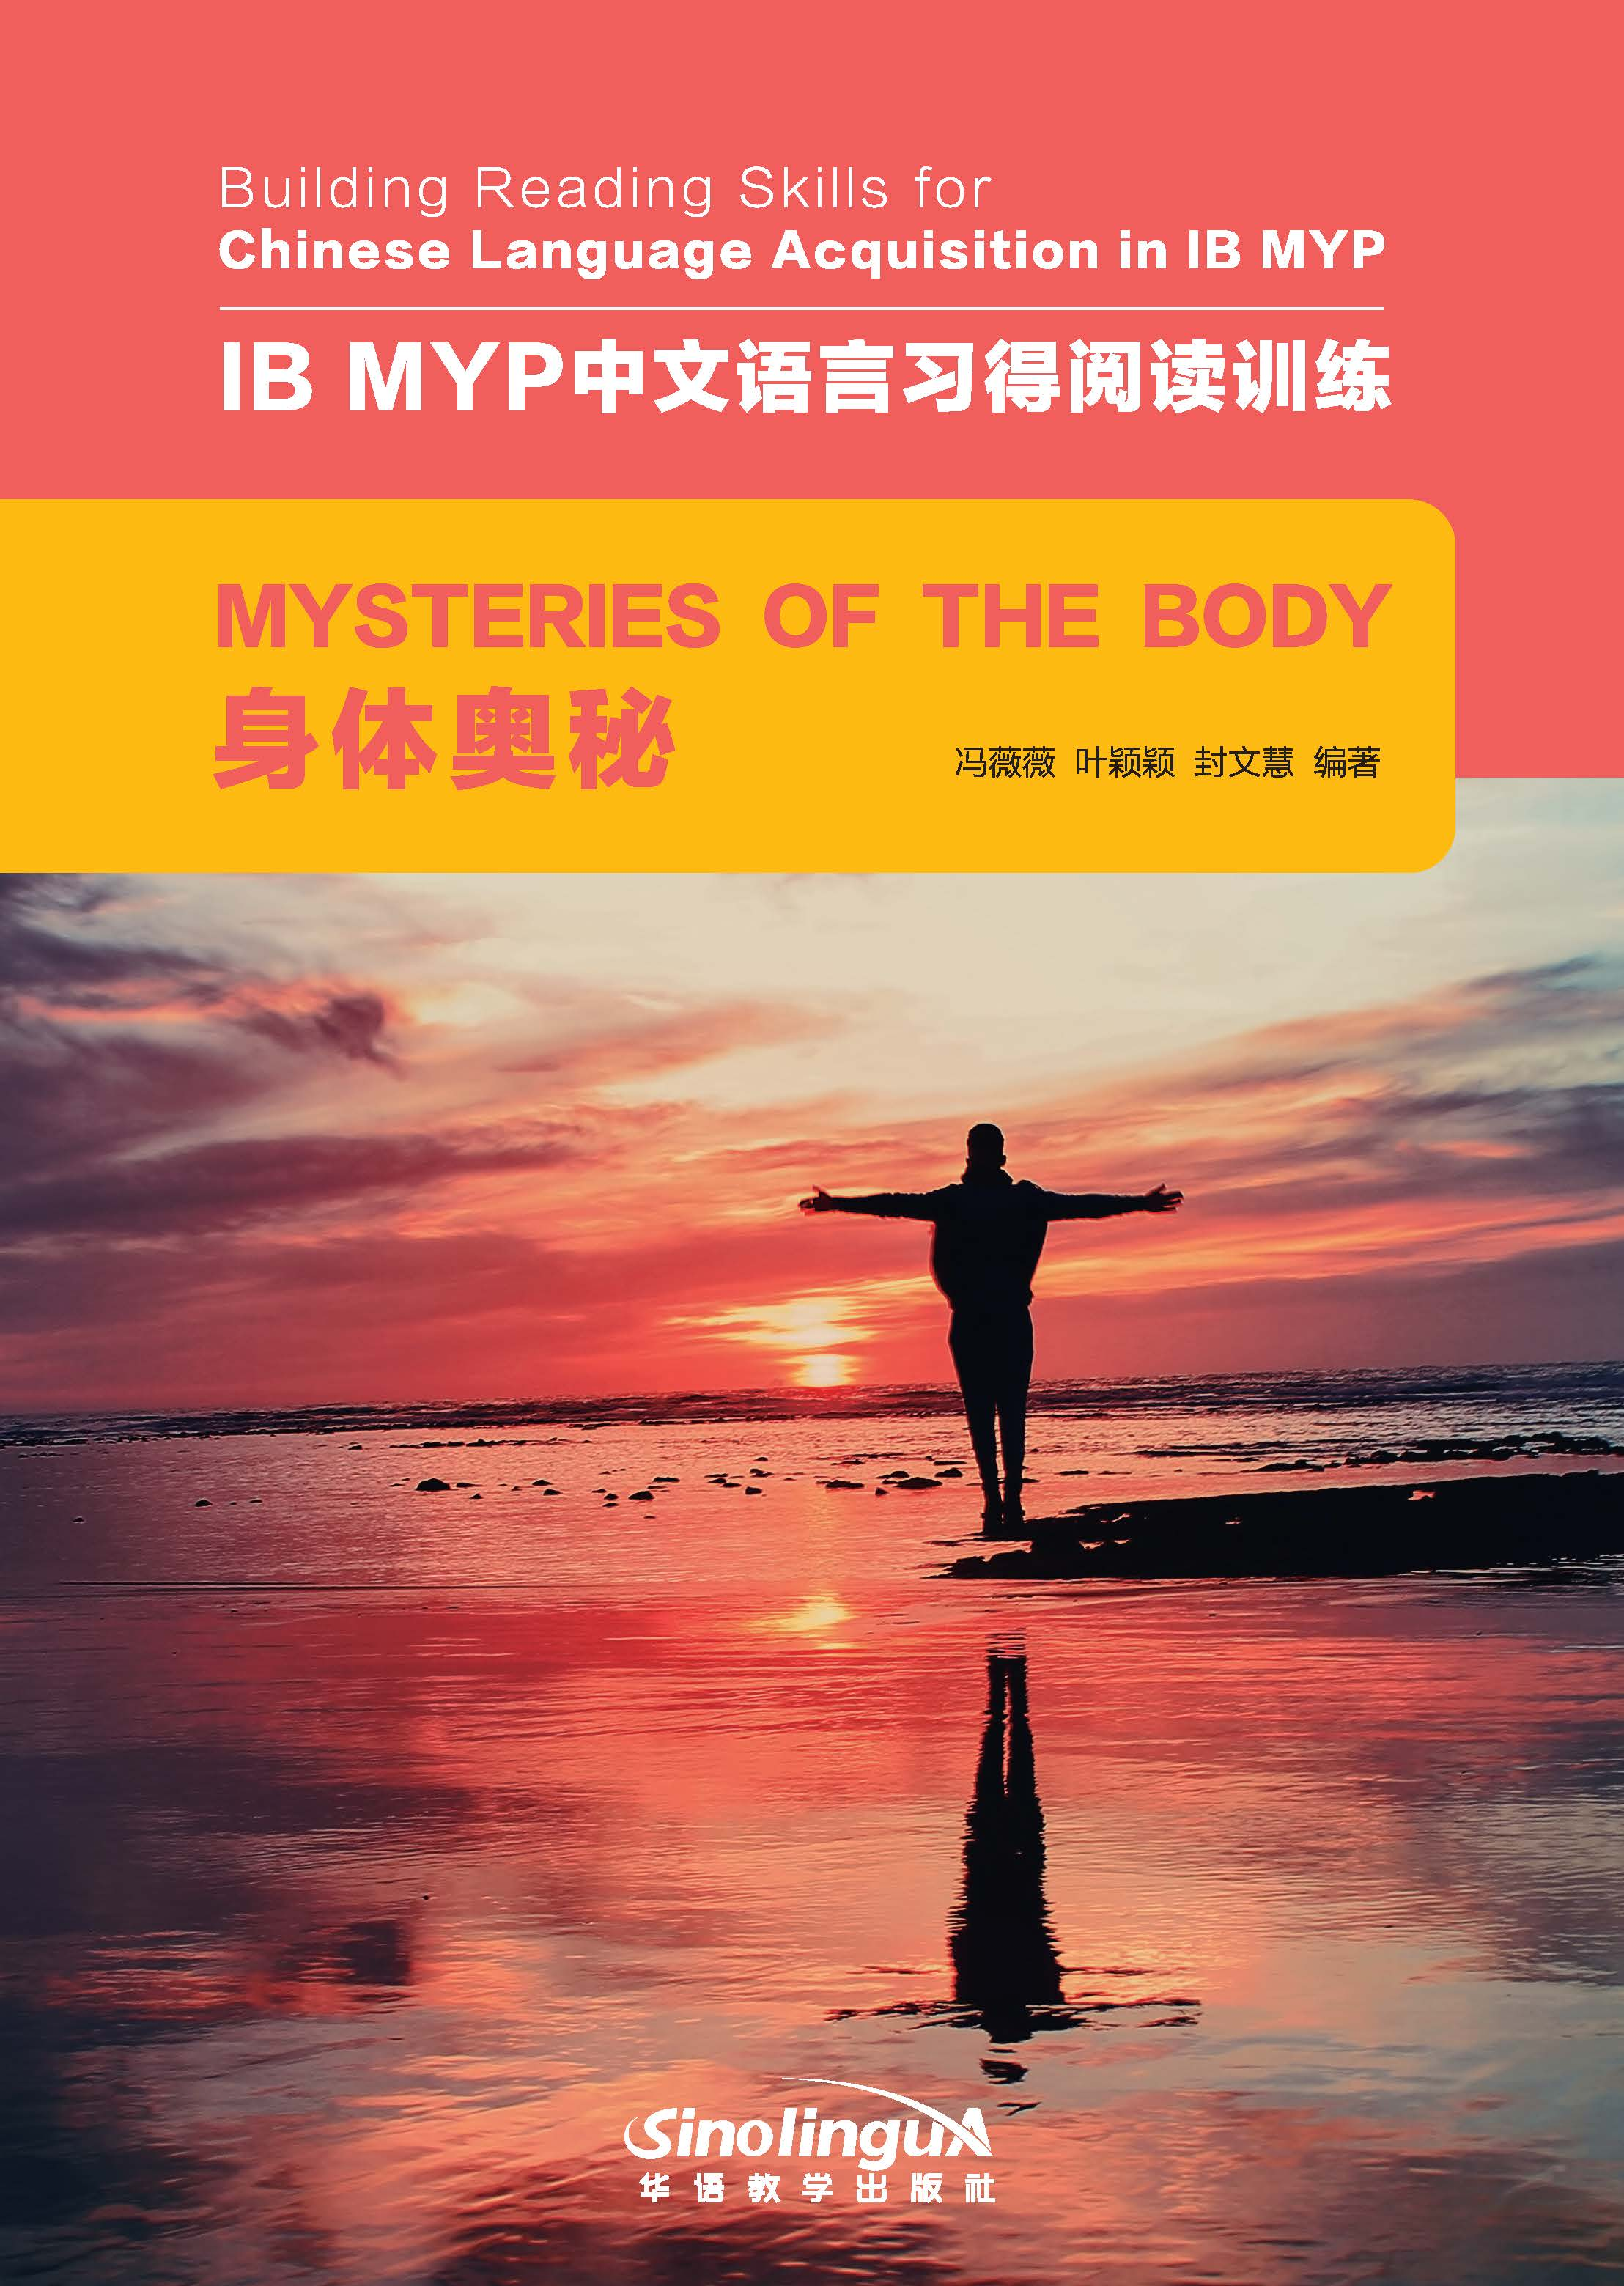 Building Reading Skills for Chinese Language Acquisition in IB MYP : Mysteries of the Body